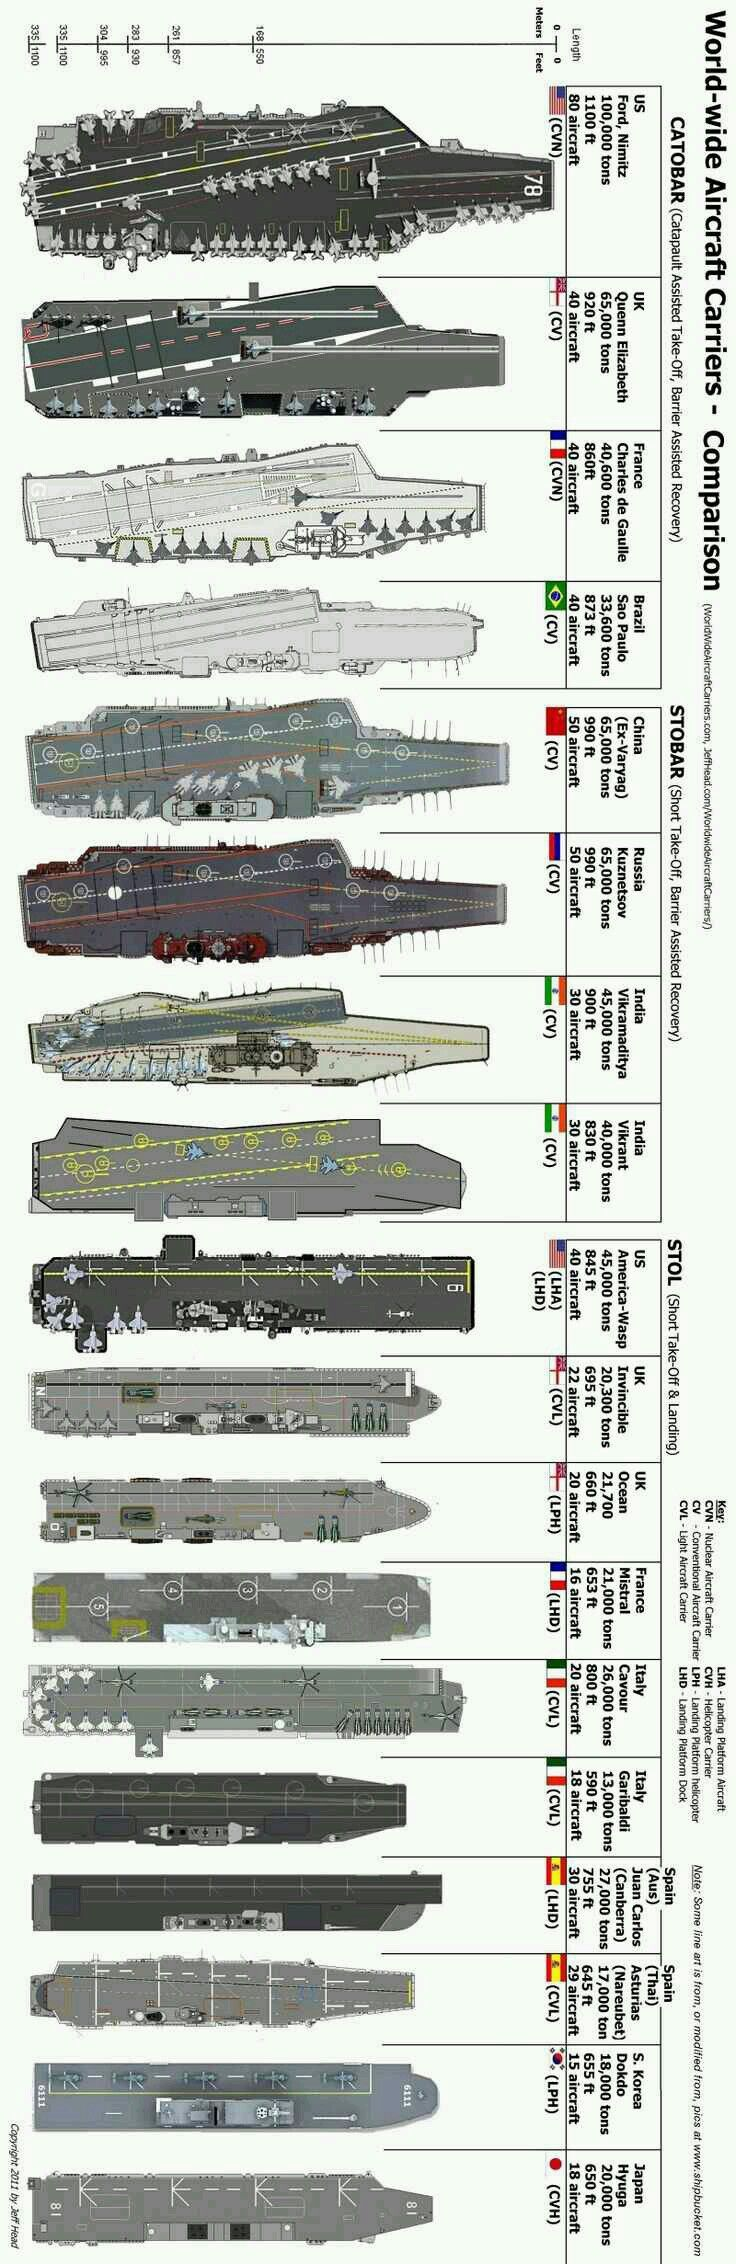 Comparison of aircraft carrier